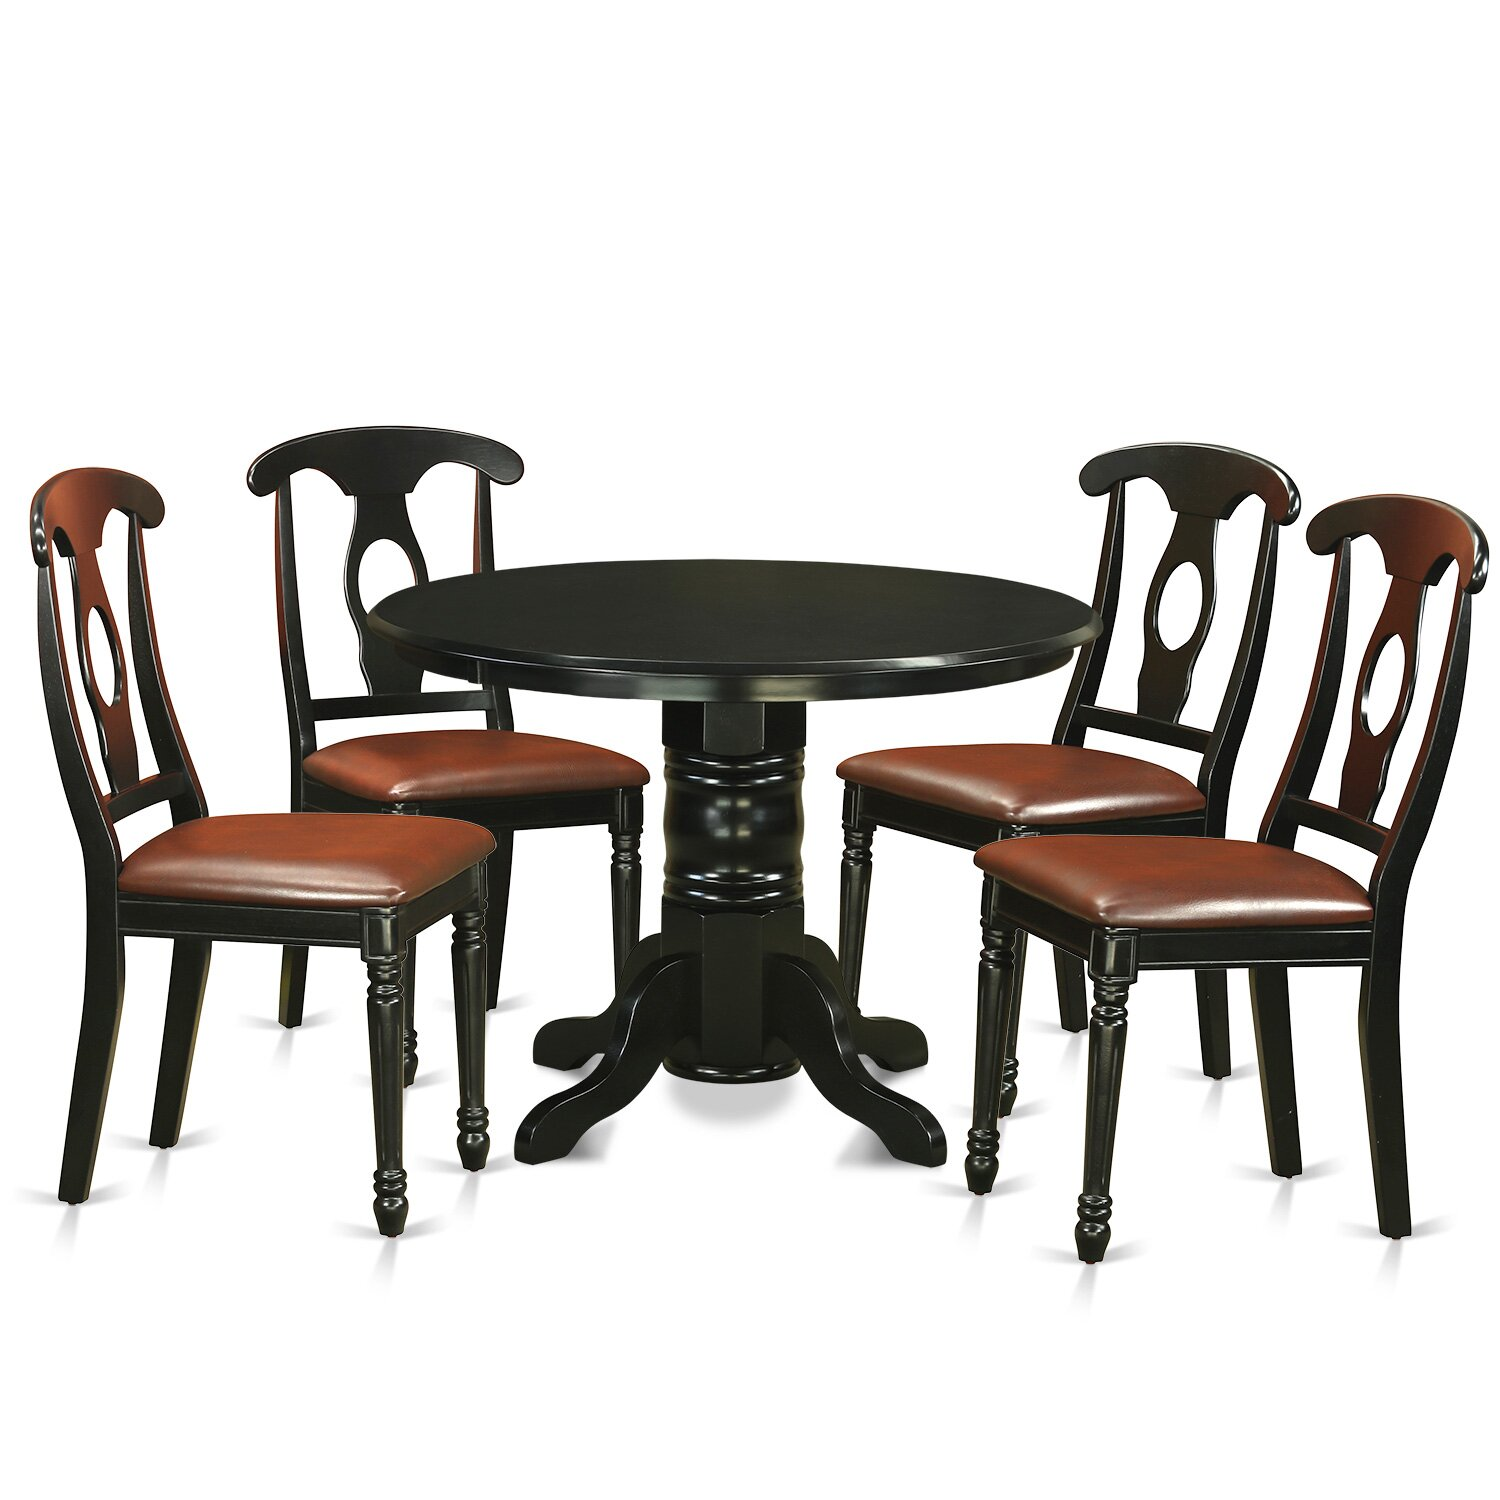 East west shelton 5 piece dining set reviews wayfair for Kitchen and dining room chairs